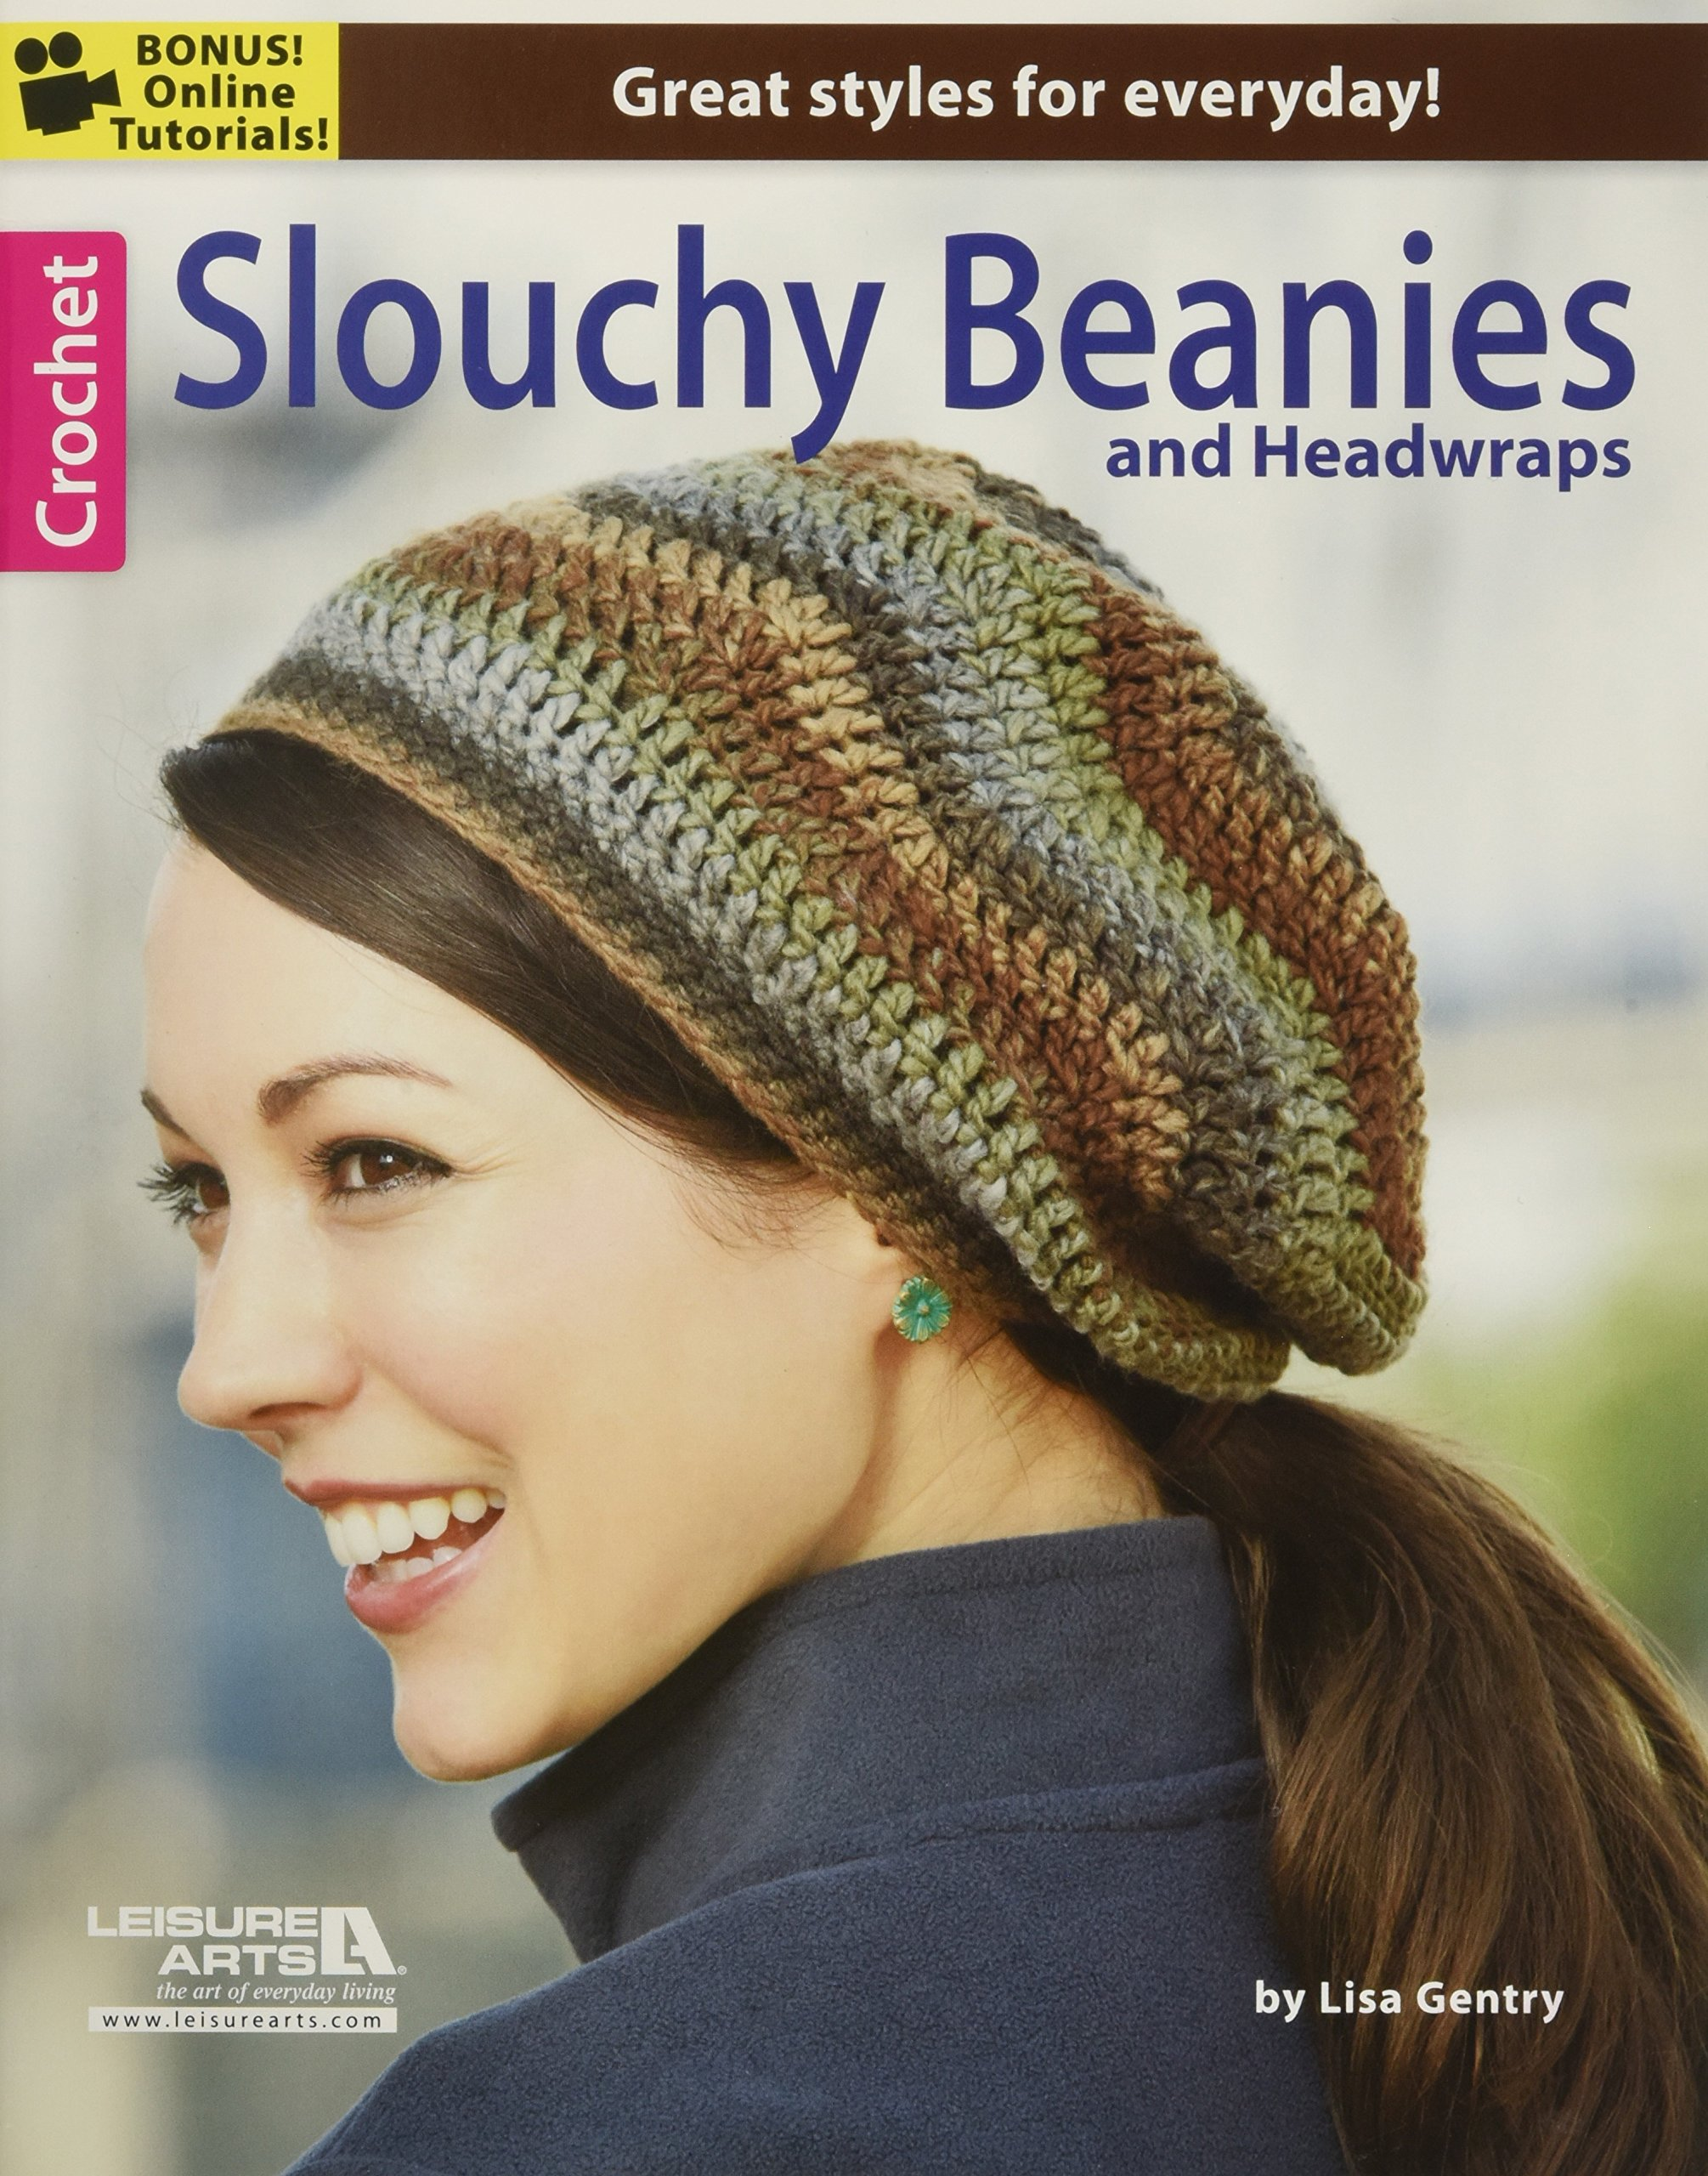 Buy Crochet Slouchy Beanies Headwraps Great Styles For Everyday